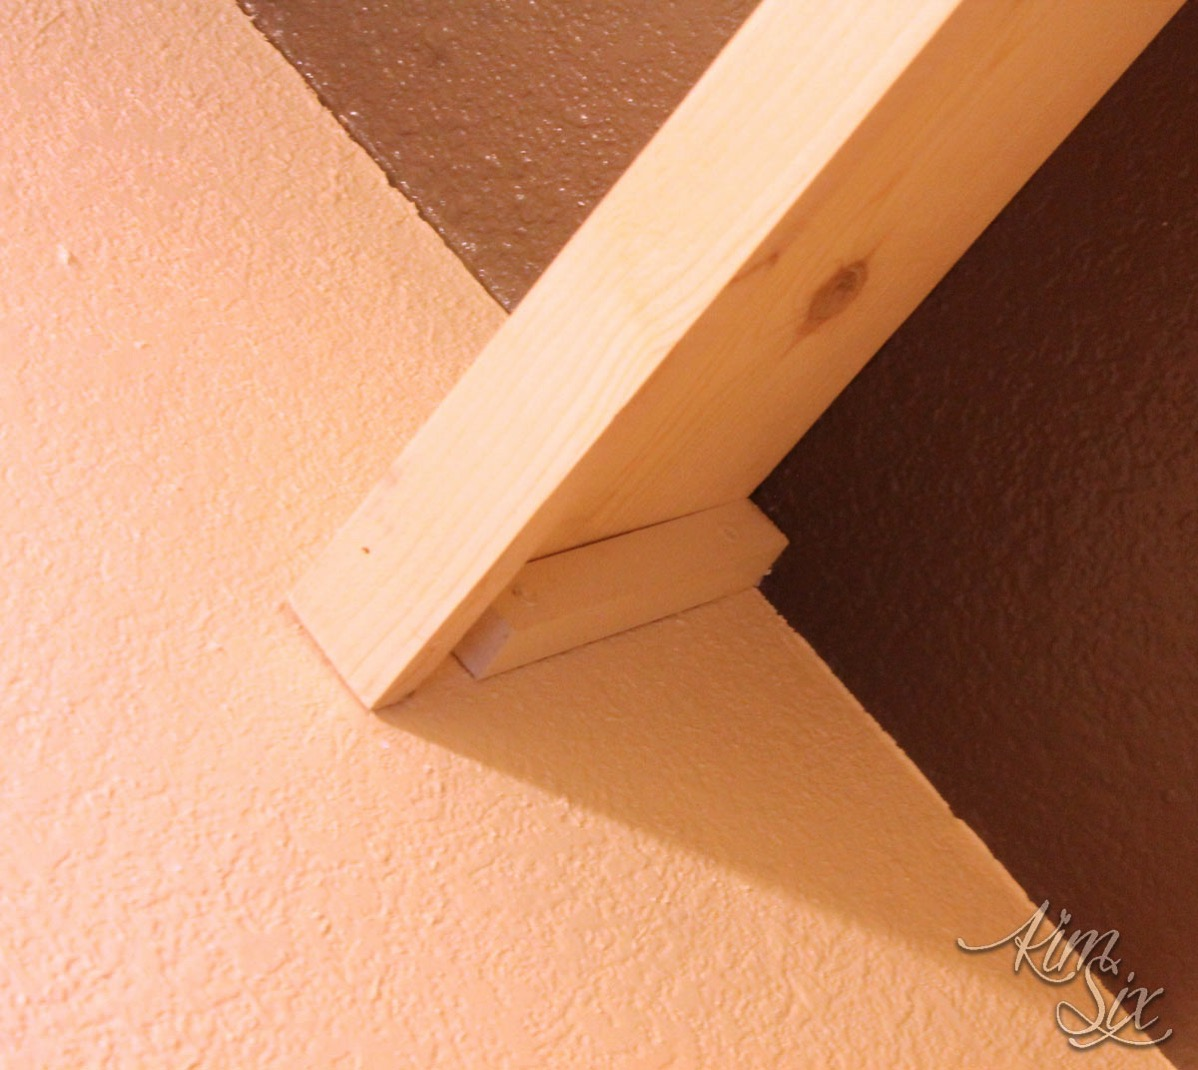 Sidewall support on floating shelves